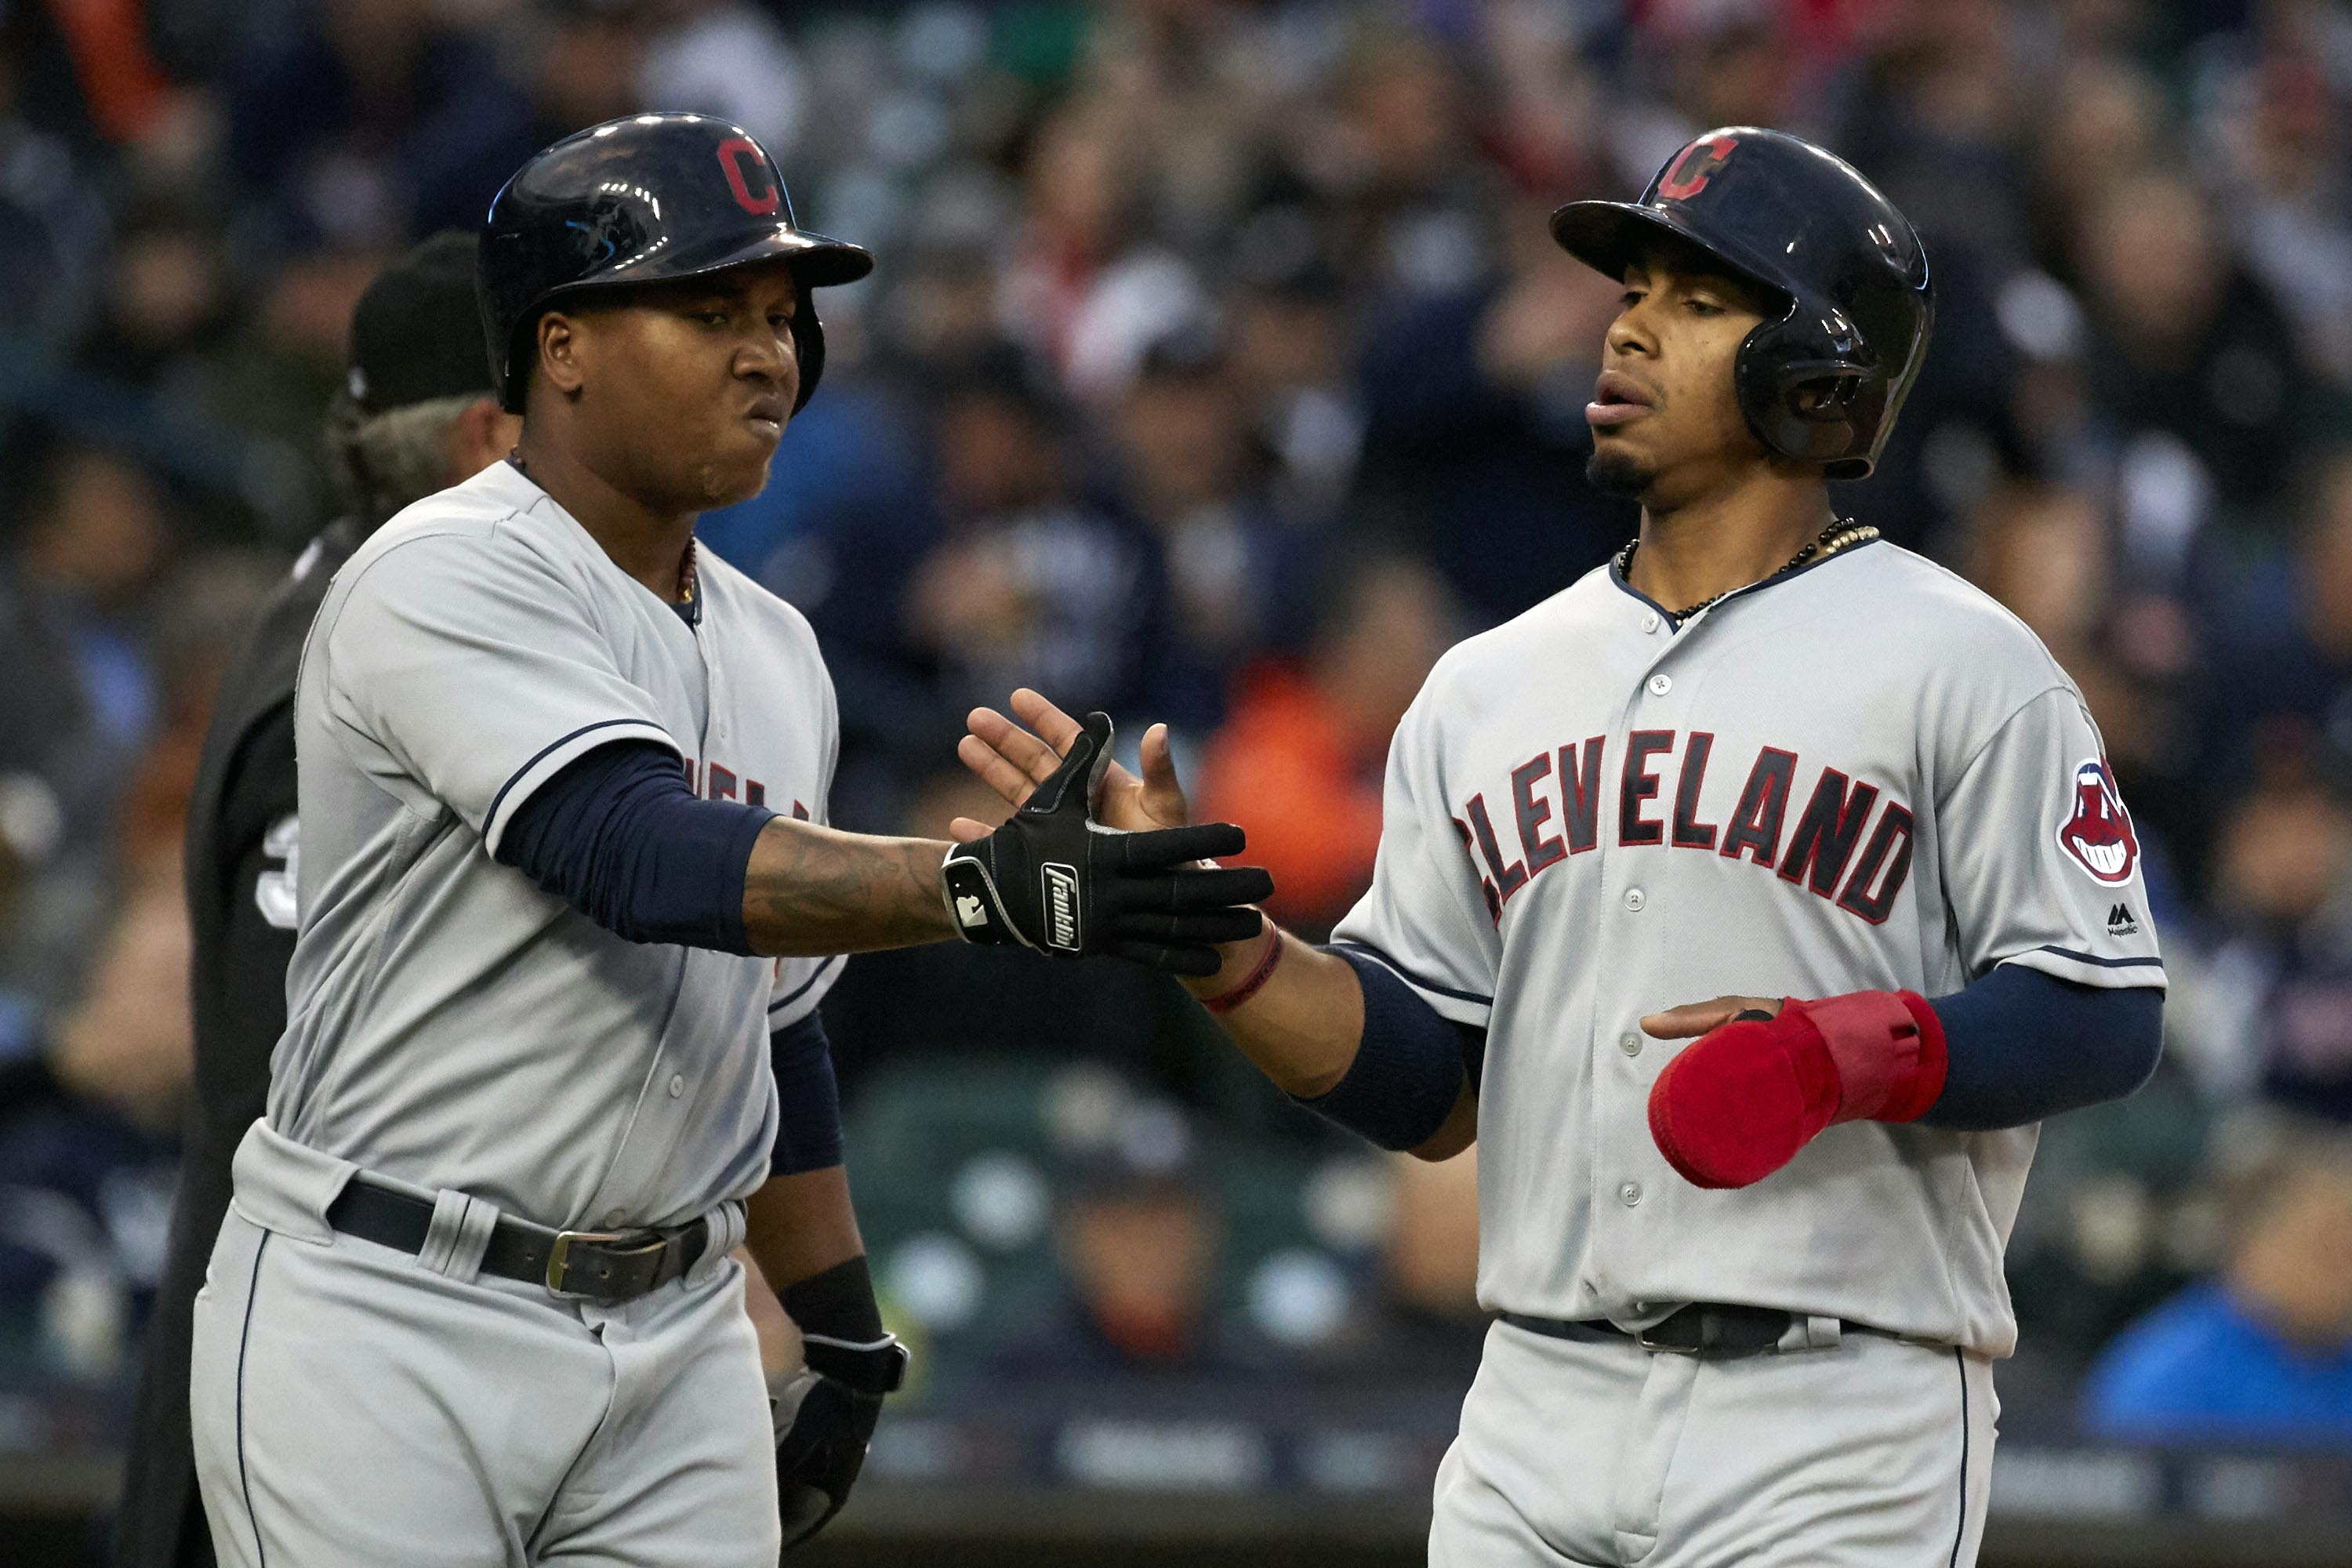 Francisco Lindor and Jose Ramirez